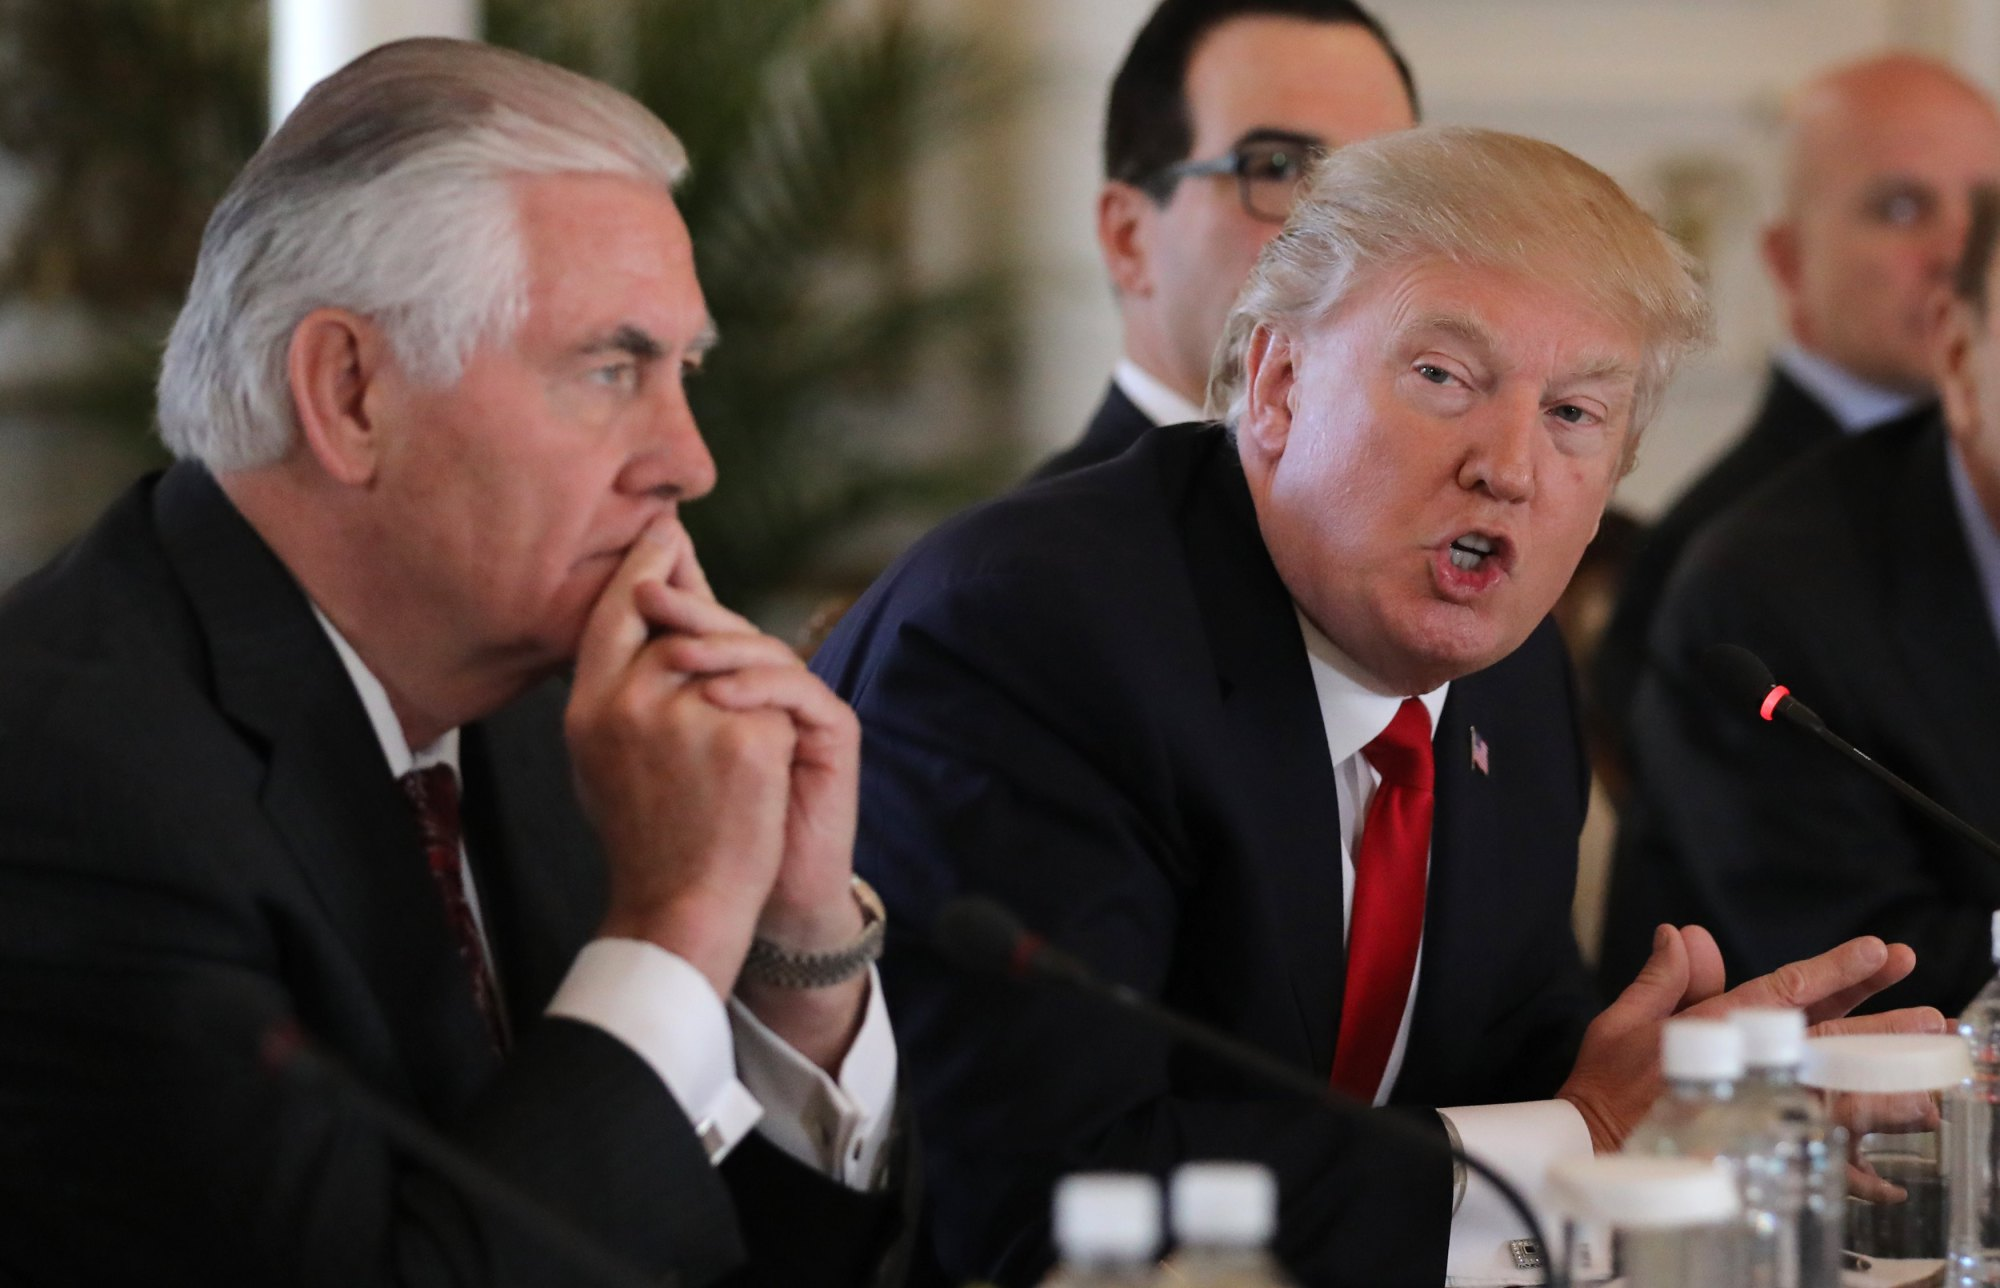 U.S. President Donald Trump speaks next to Secretary of State Rex Tillerson during a bilateral meeting with China's President Xi Jinping (not pictured) at Trump's Mar-a-Lago estate in Palm Beach, Florida, Friday. | REUTERS